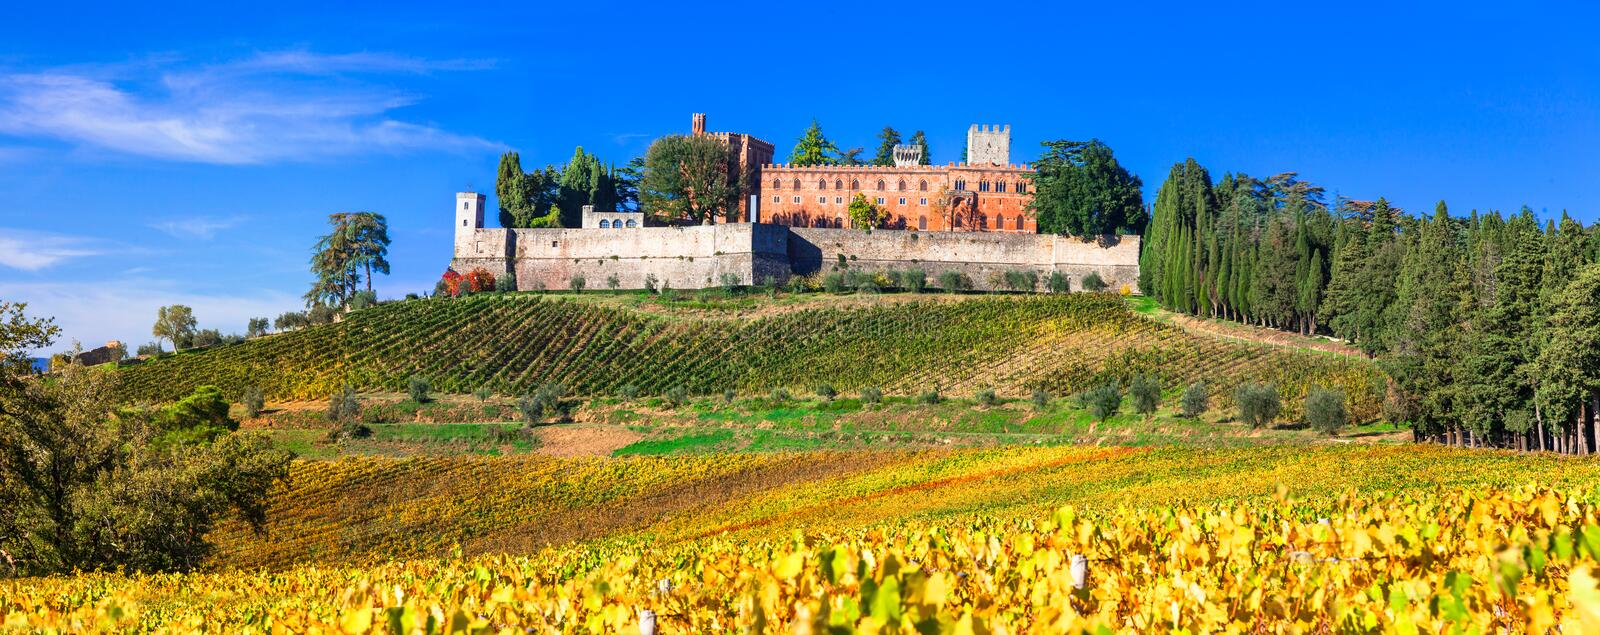 Castles and vineyards of Tuscany, Chianti wine region. Impressive Brolio castle, view with colorful vineyards, Tuscany, Italy royalty free stock photo